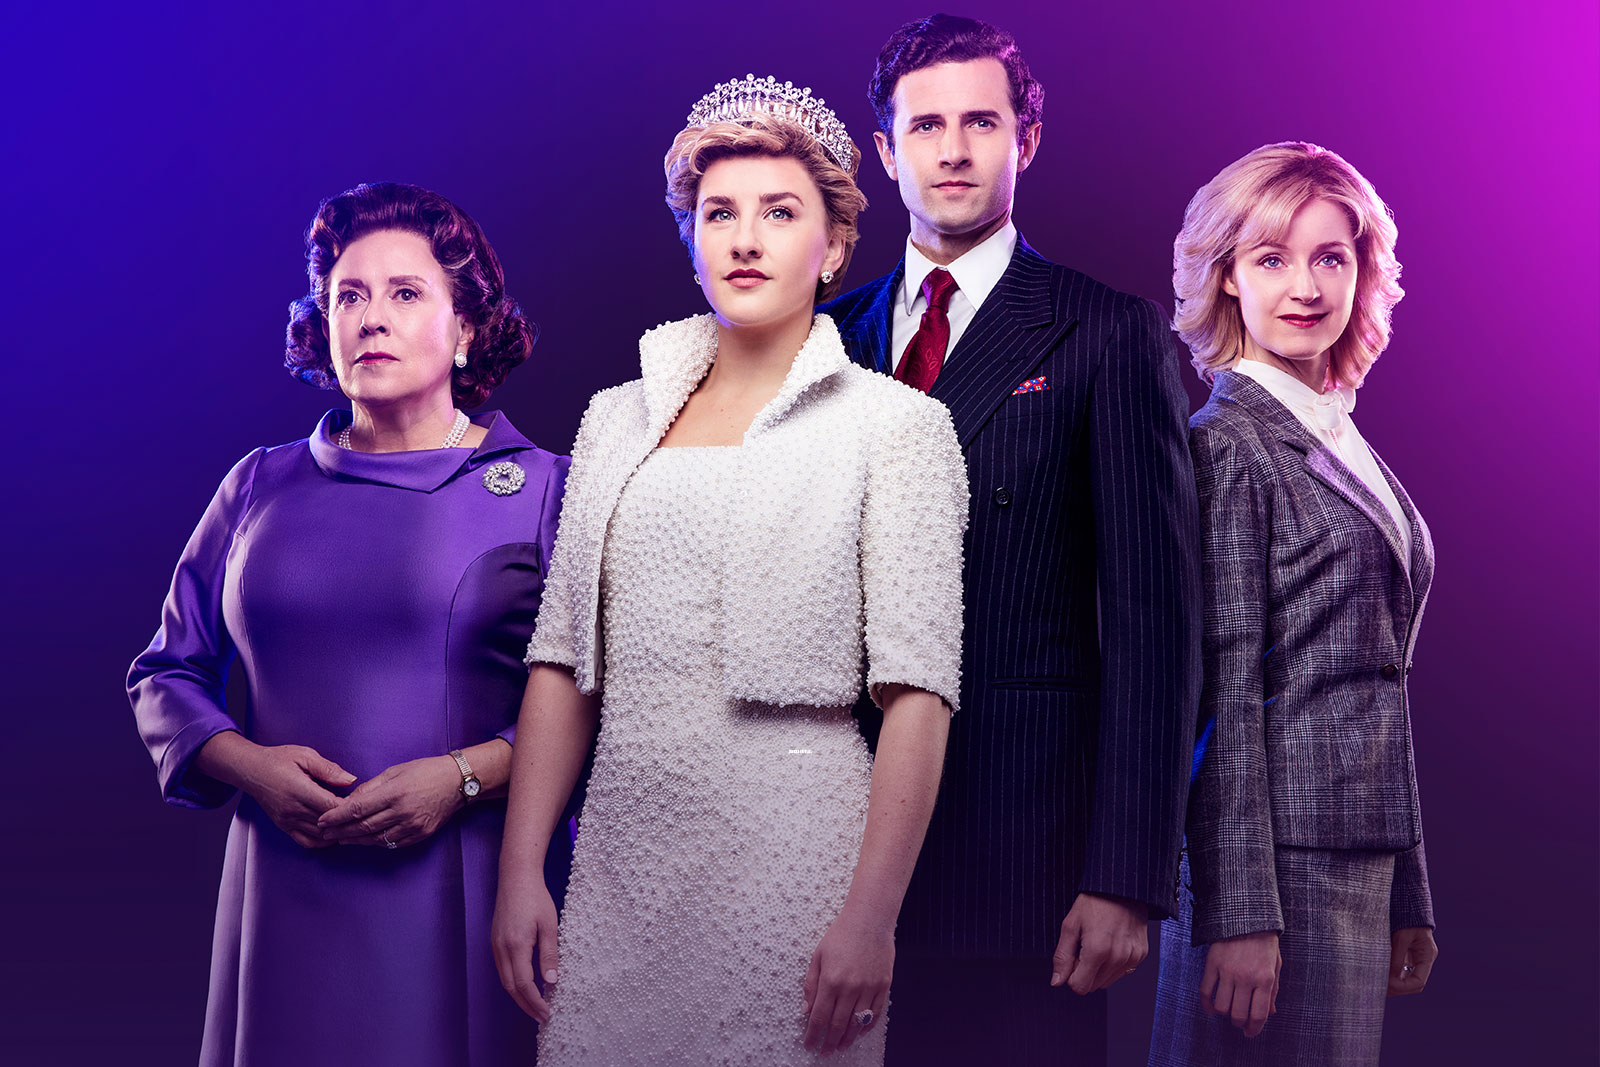 The actors playing the Queen, Diana, Charles and Camilla are all facing the camera are looking off into the distance. They are in expensive formal wear and in front of a purple backdrop. The actress playing Camilla is staring into the camera with a slight smile.